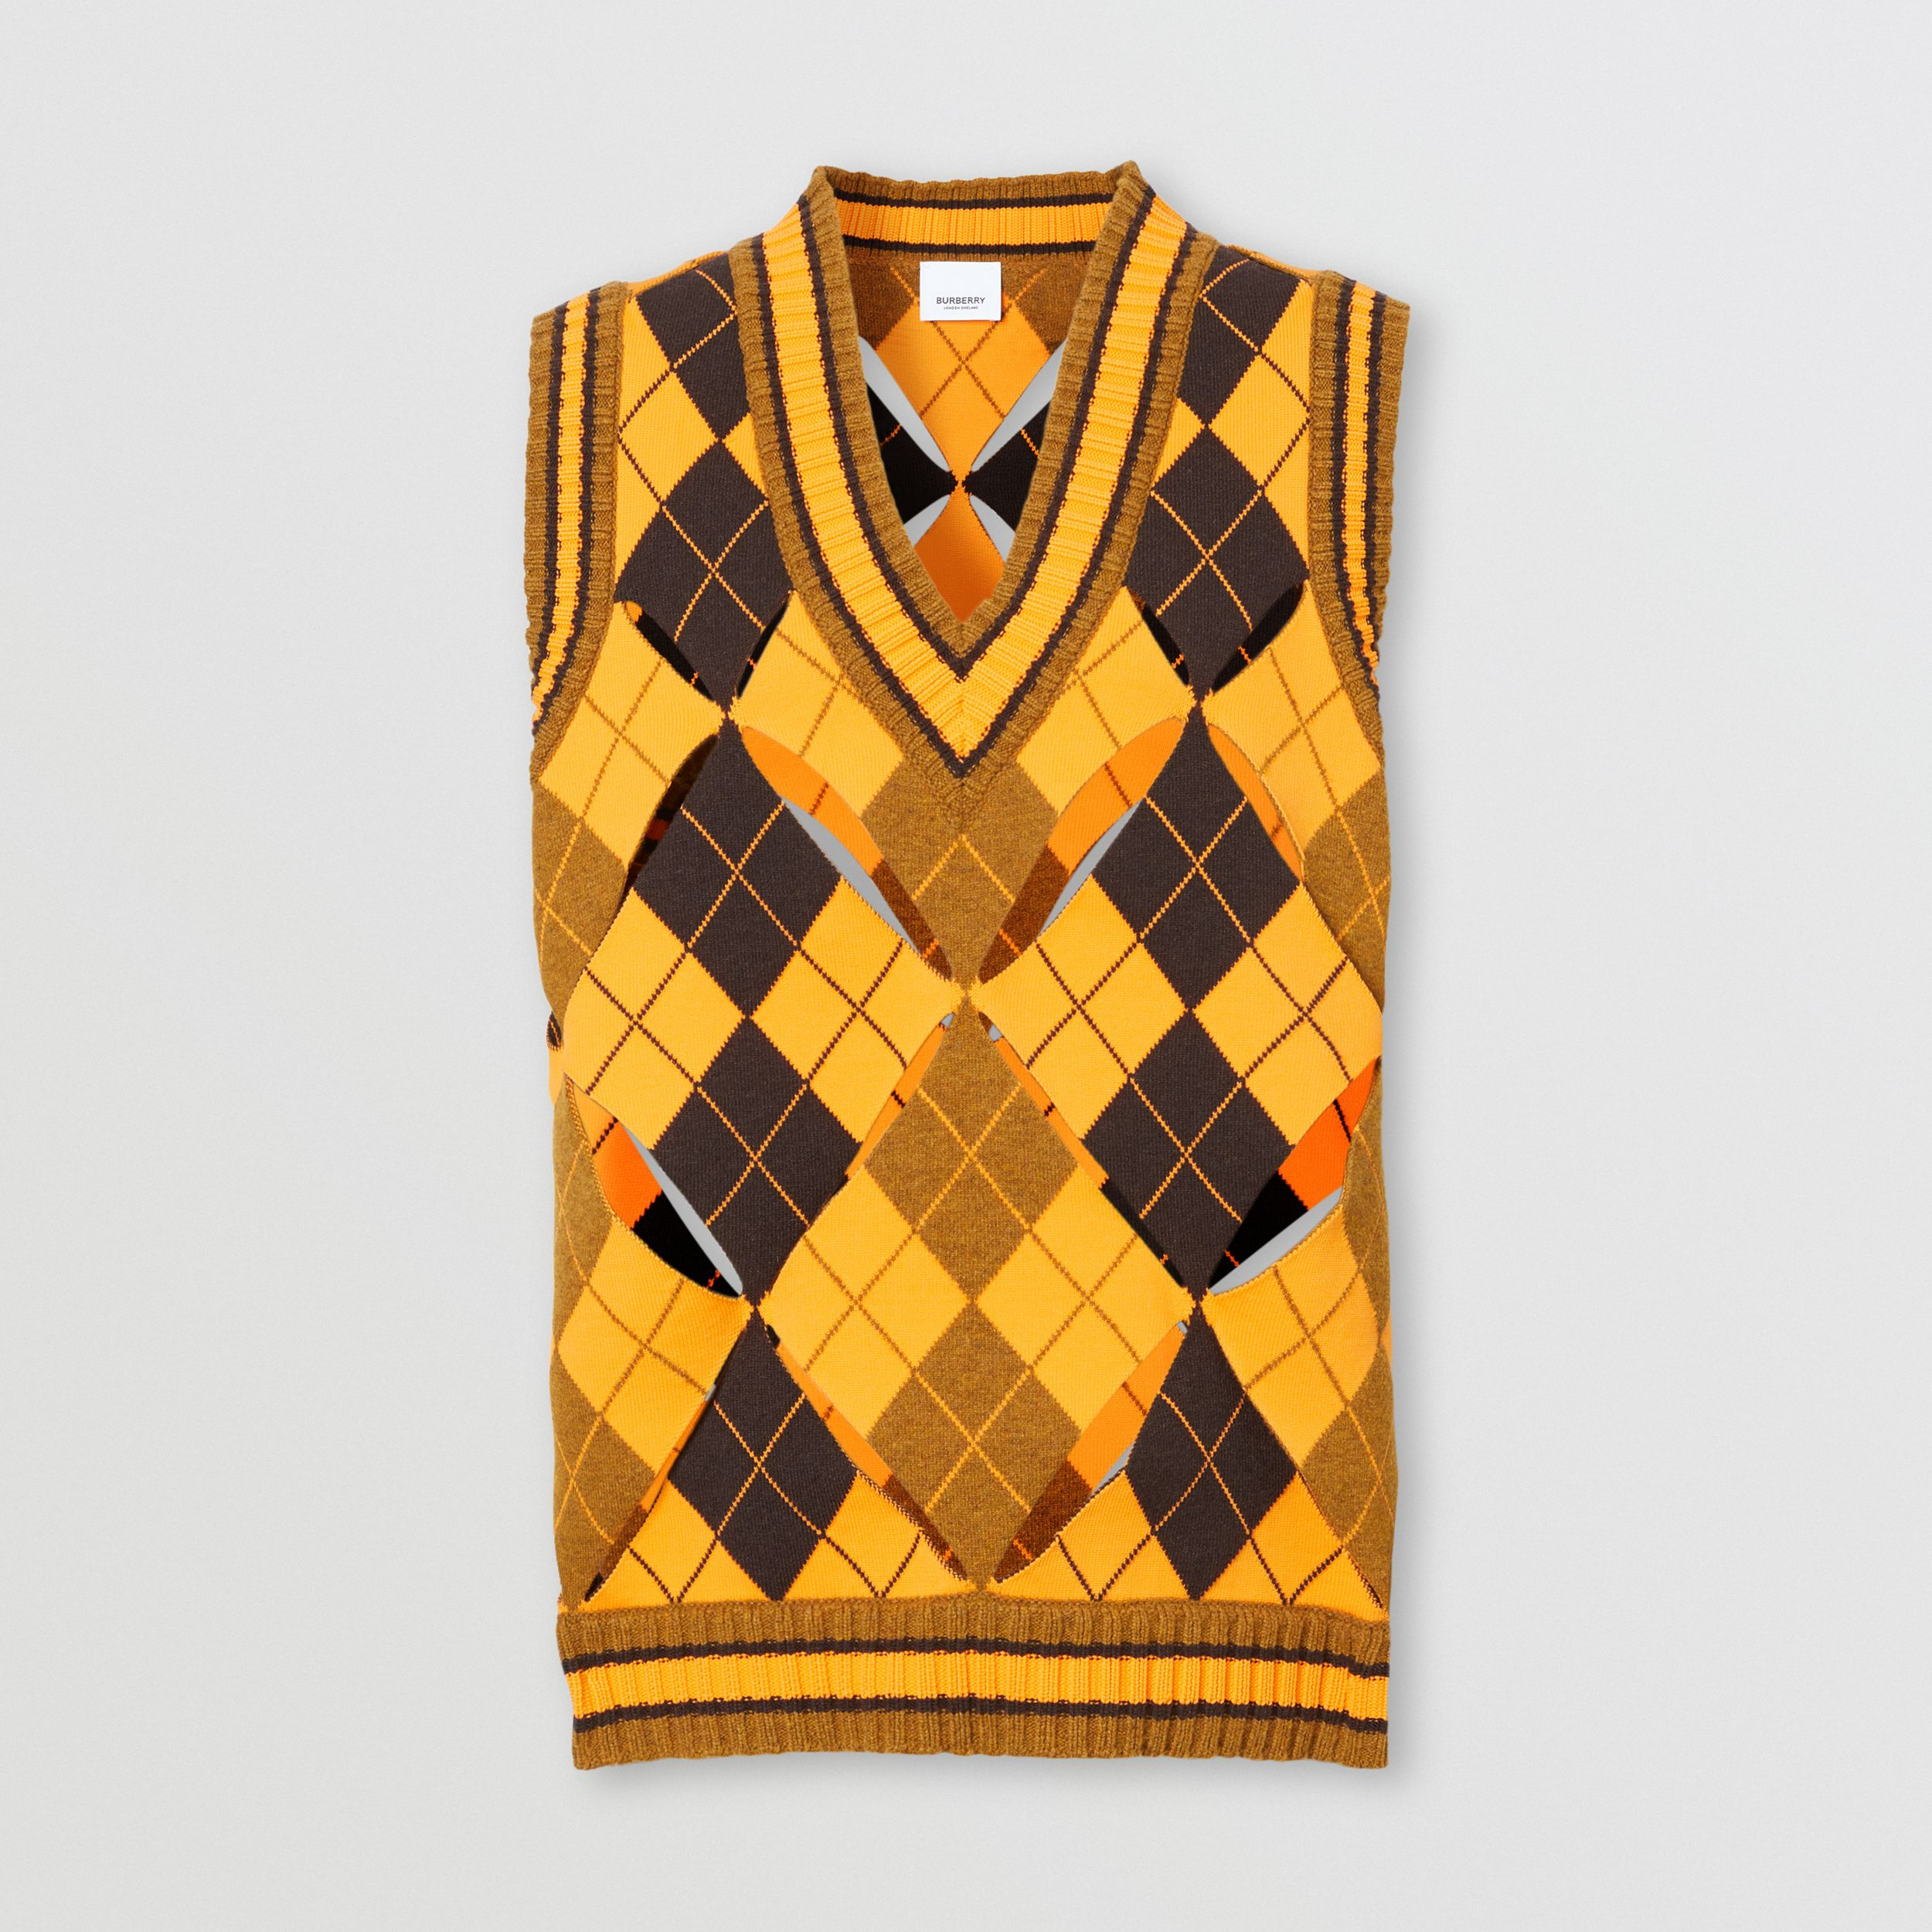 Cut-out Detail Argyle Technical Wool Jacquard Vest in Bright Orange - Women | Burberry - 4